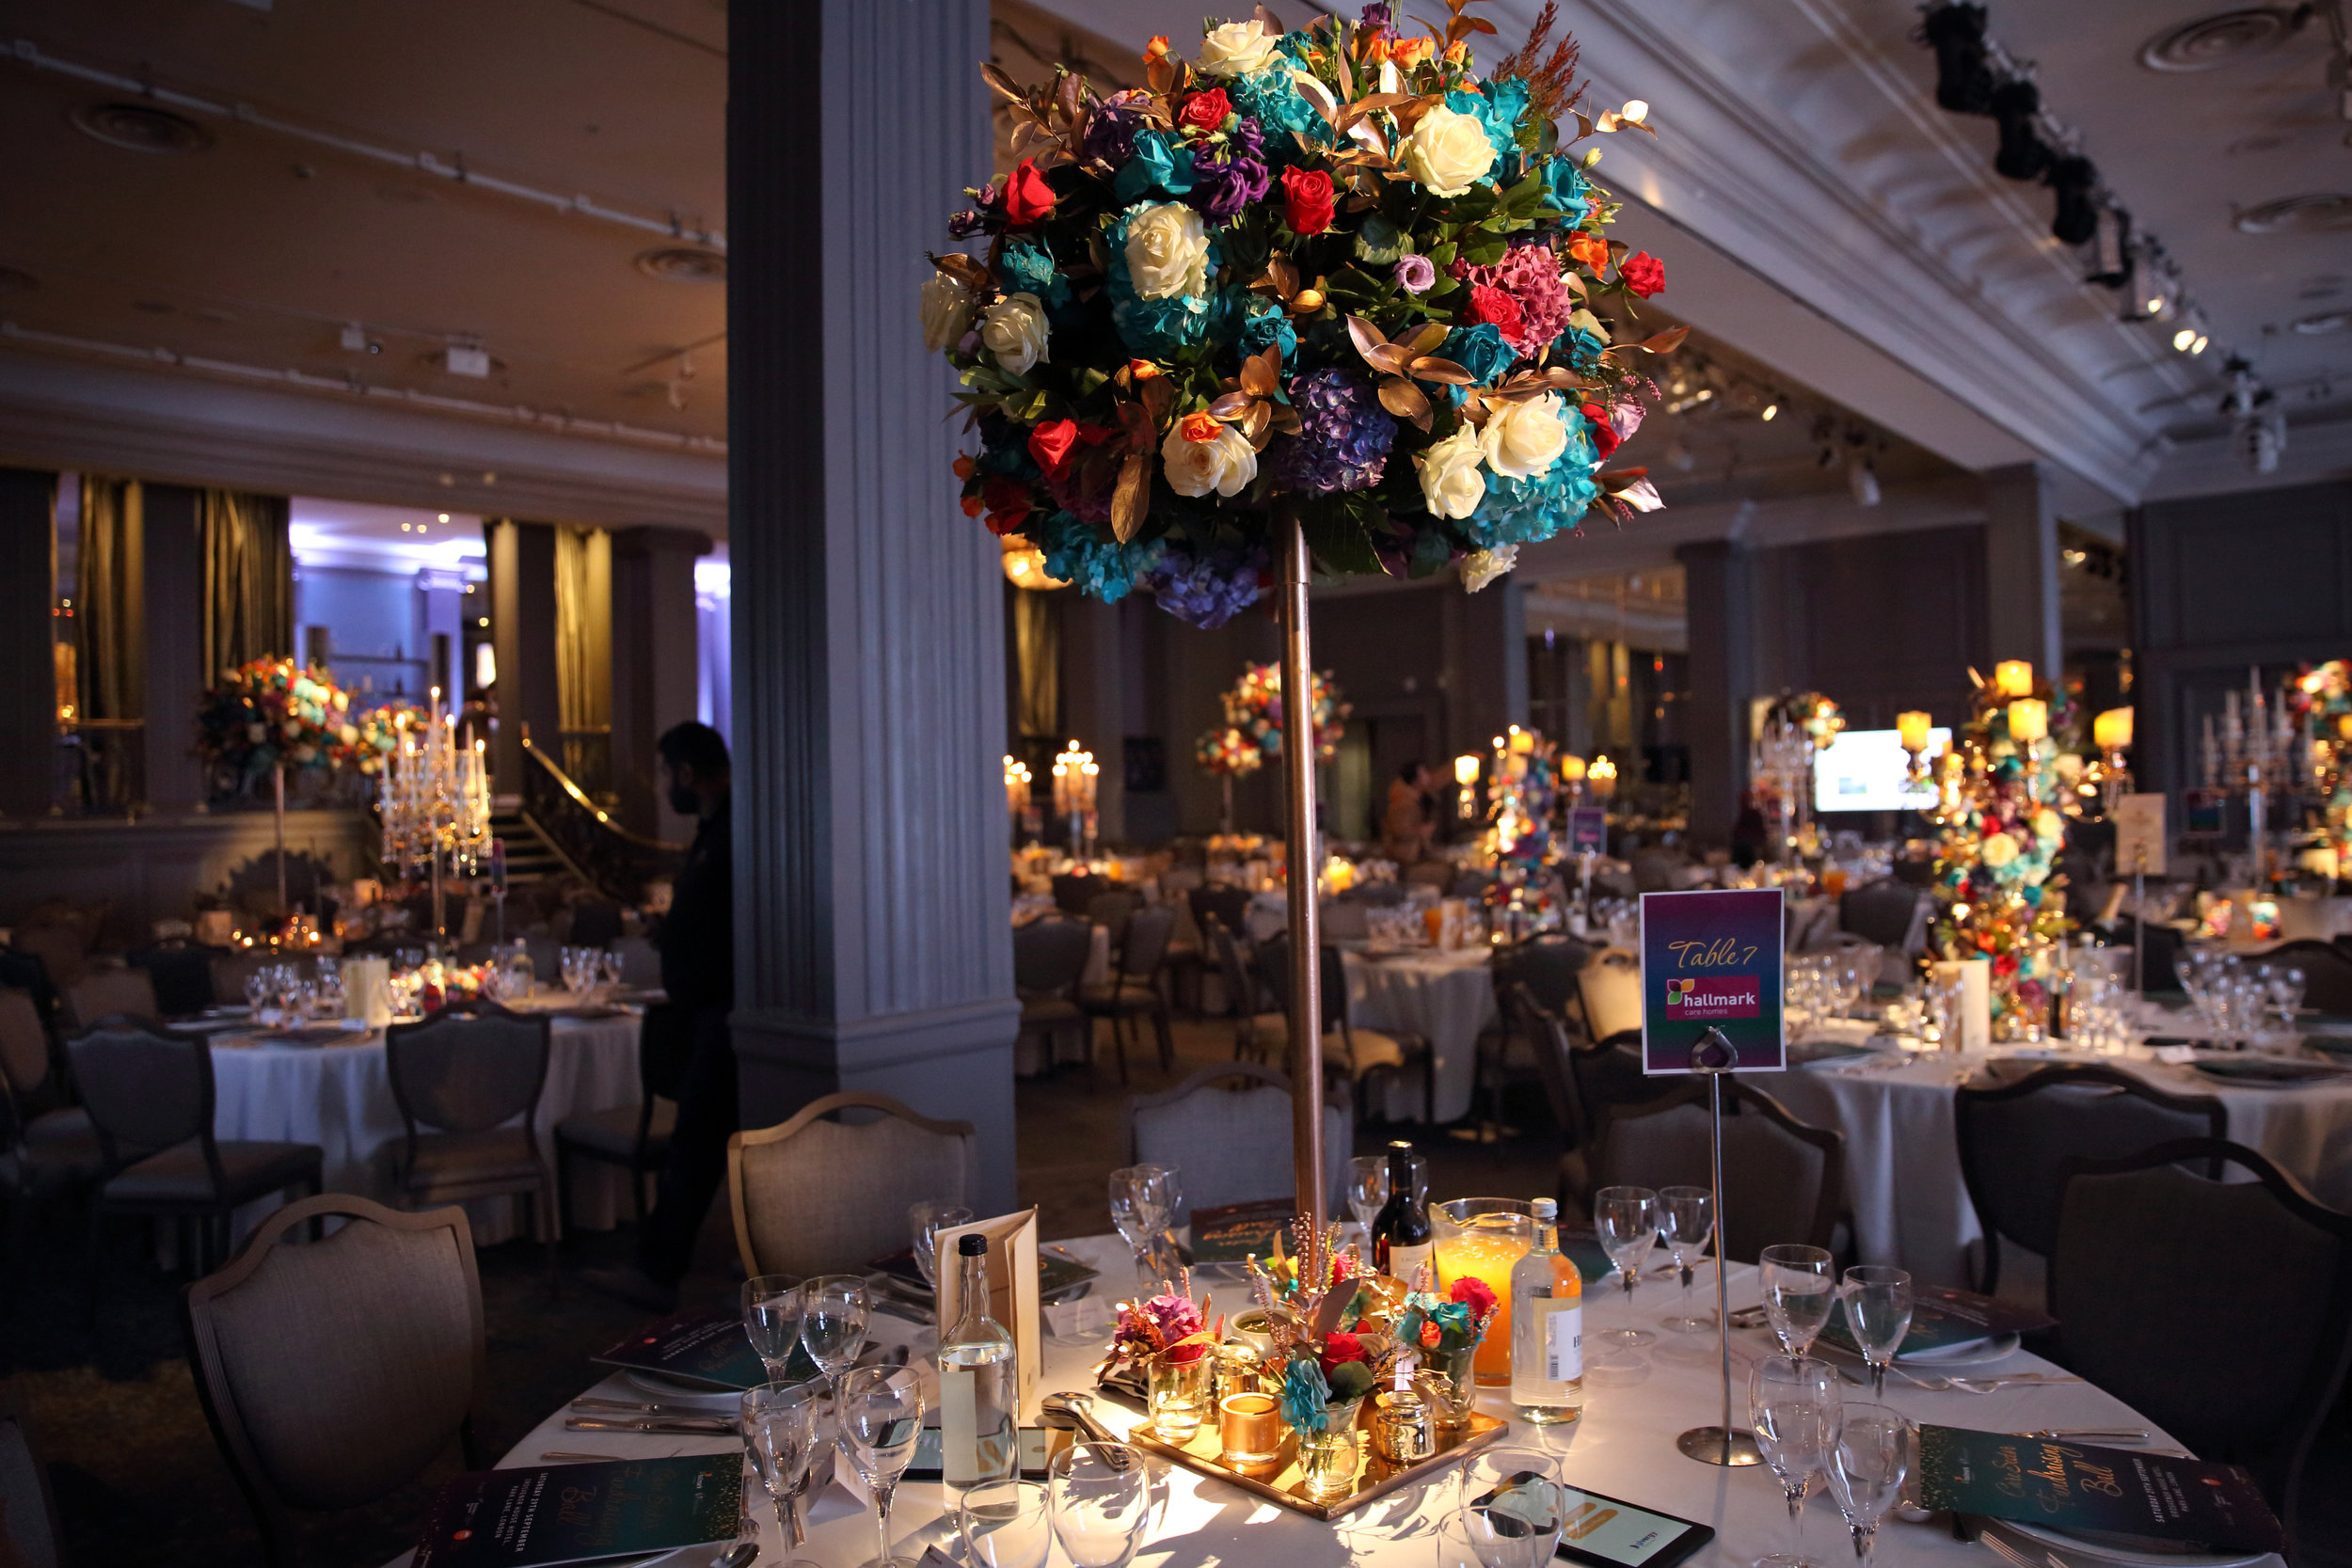 Wow-factor impact! - Visual impact upon entering the ballroom at London's Grosvenor House Hotel was a must.Our top of the class production and decor really helped deliver that.